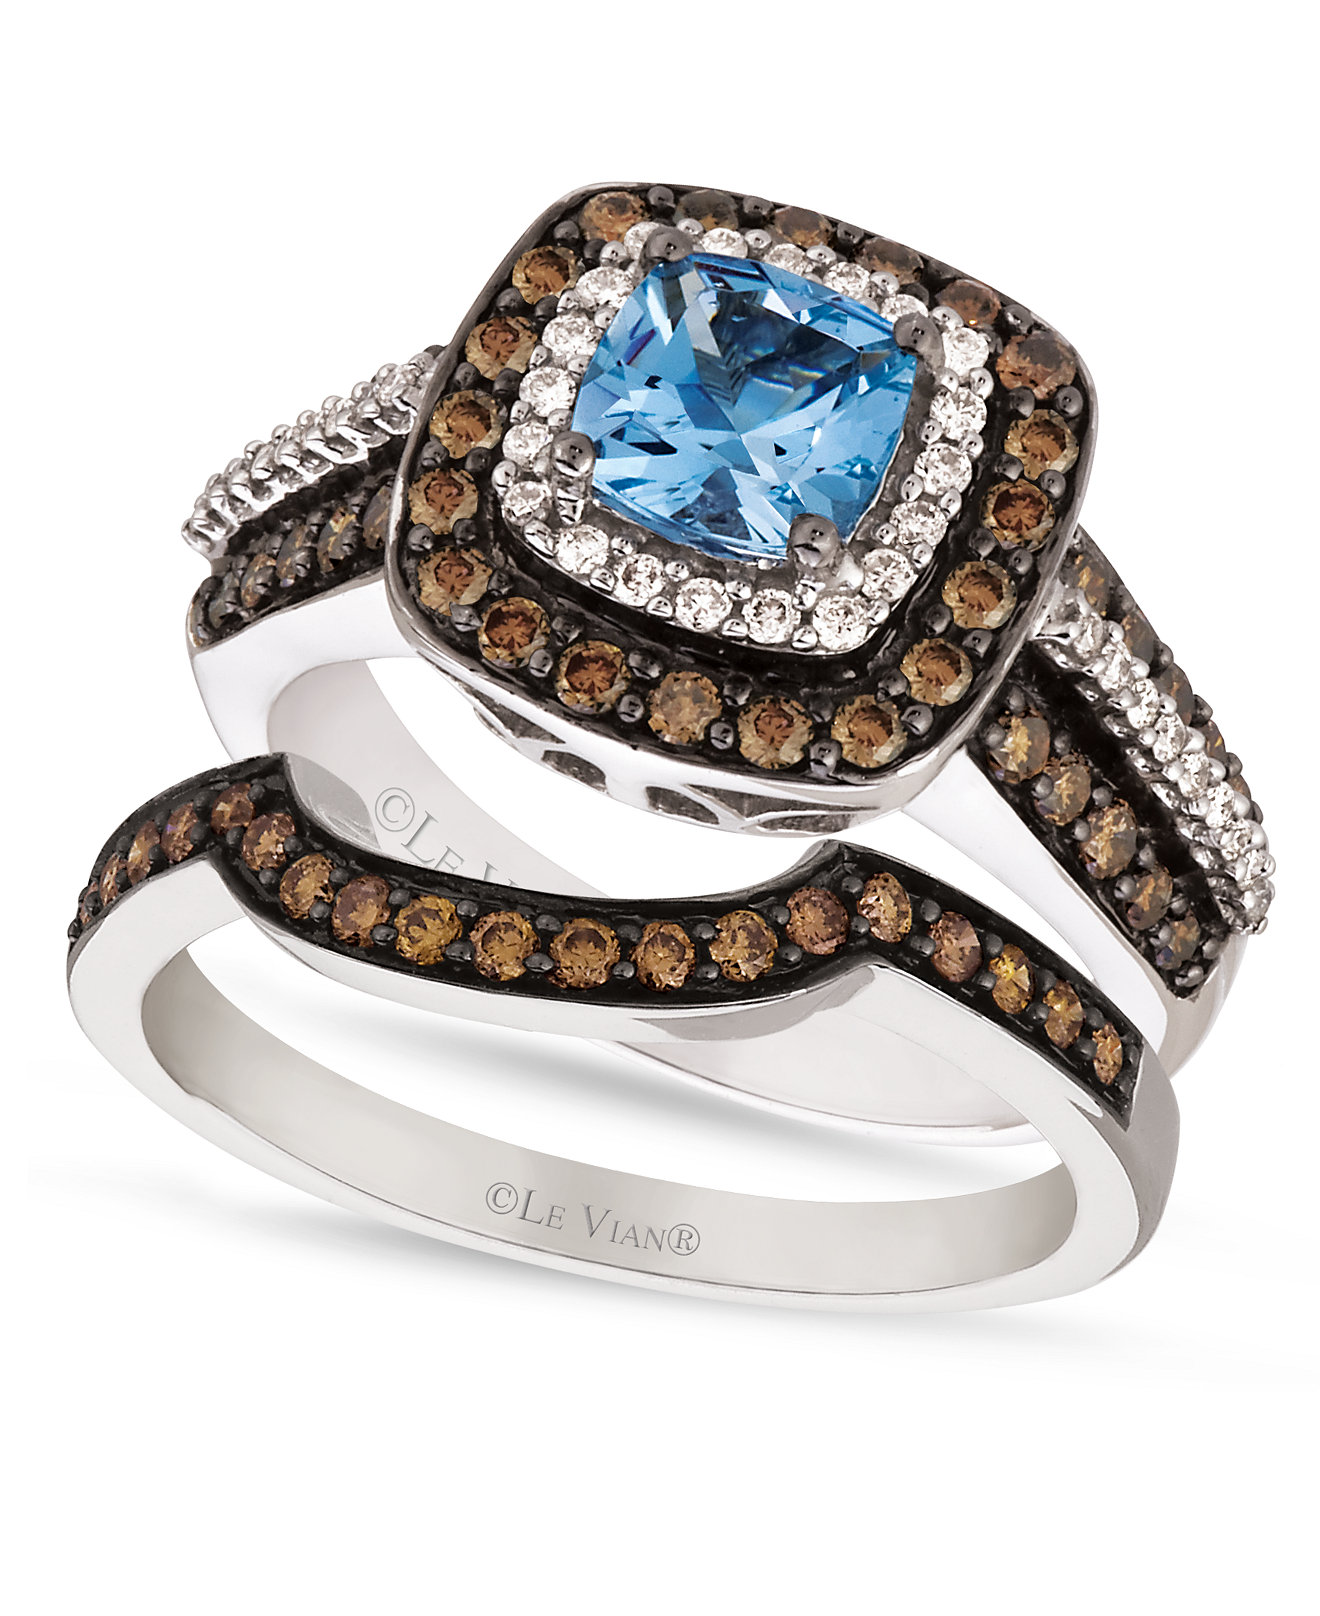 Le Vian Chocolate White Diamond And Aquamarine Stackable Rings In 14k White  Gold  Rings  Jewelry & Watches  Macy's